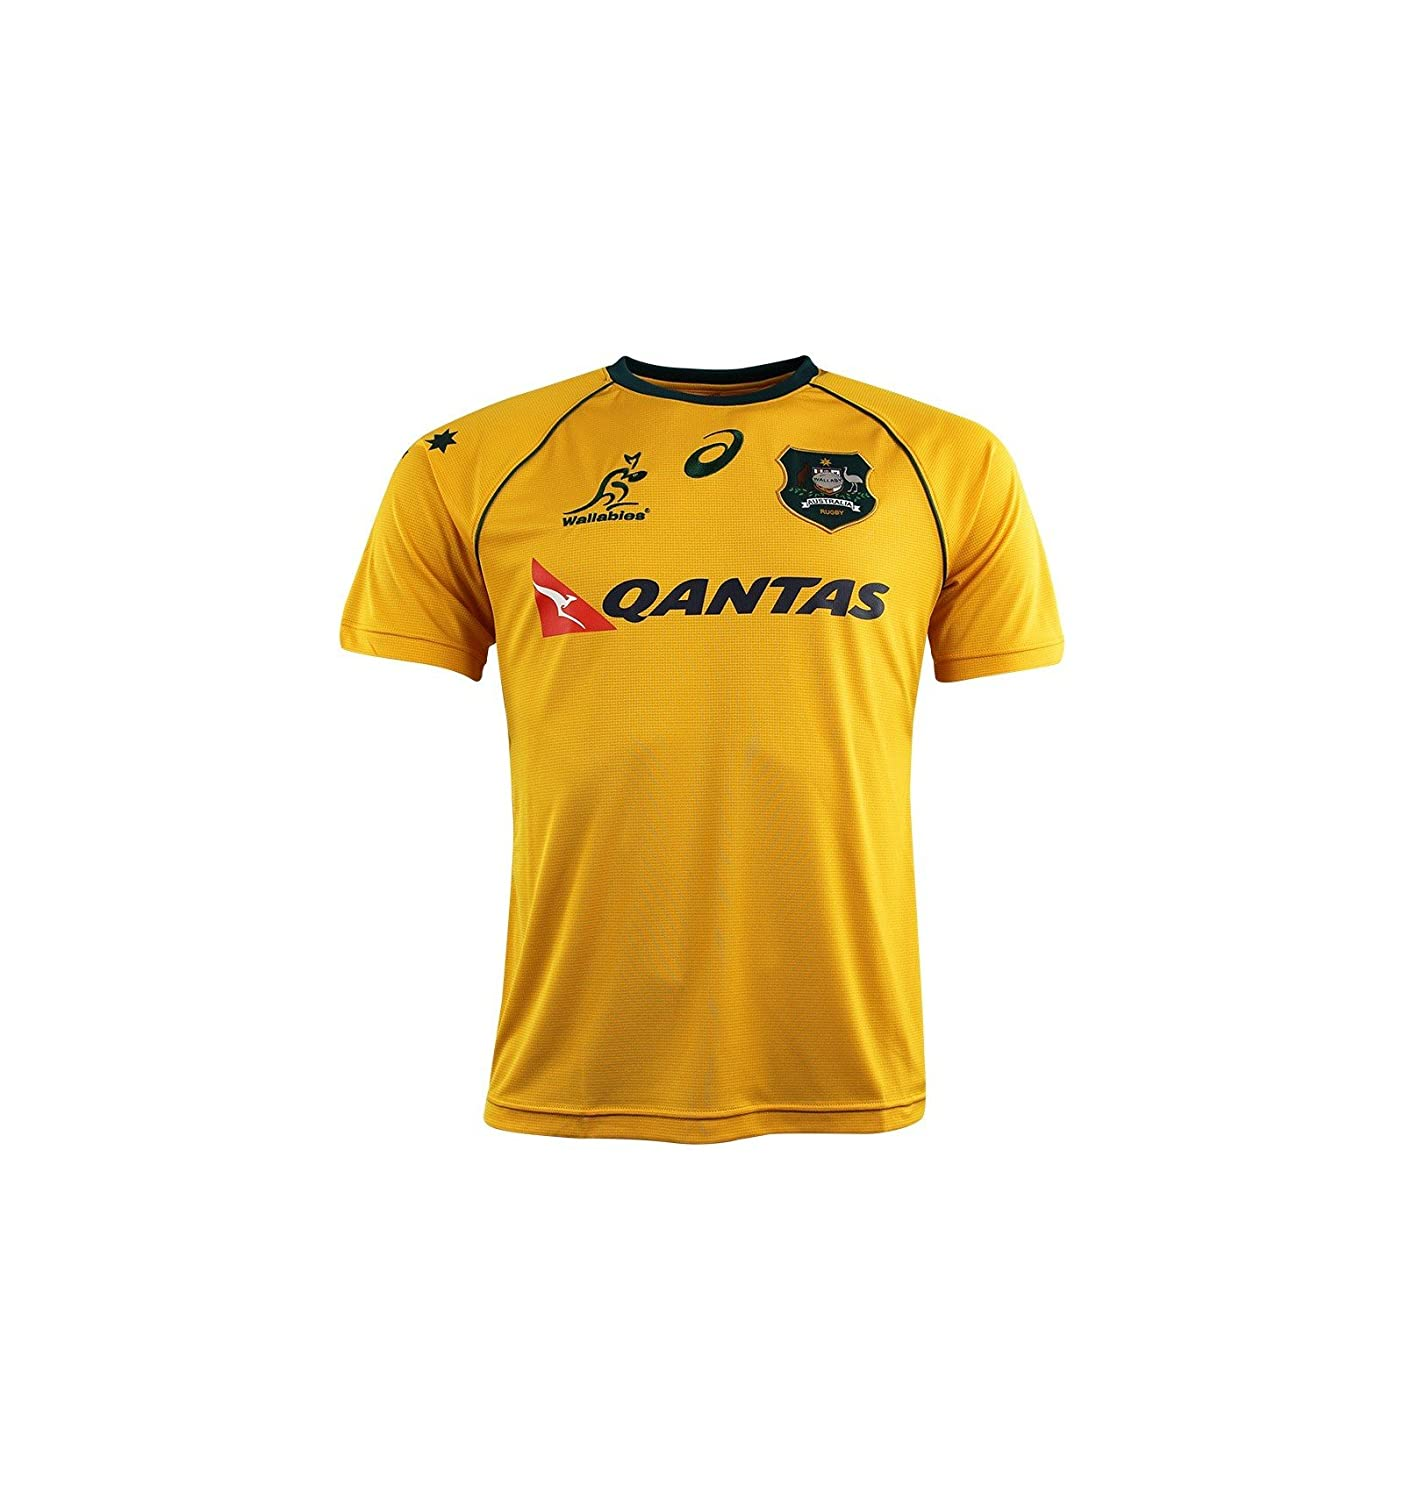 2017-2018 Australia Wallabies Home Pro Rugby Shirt